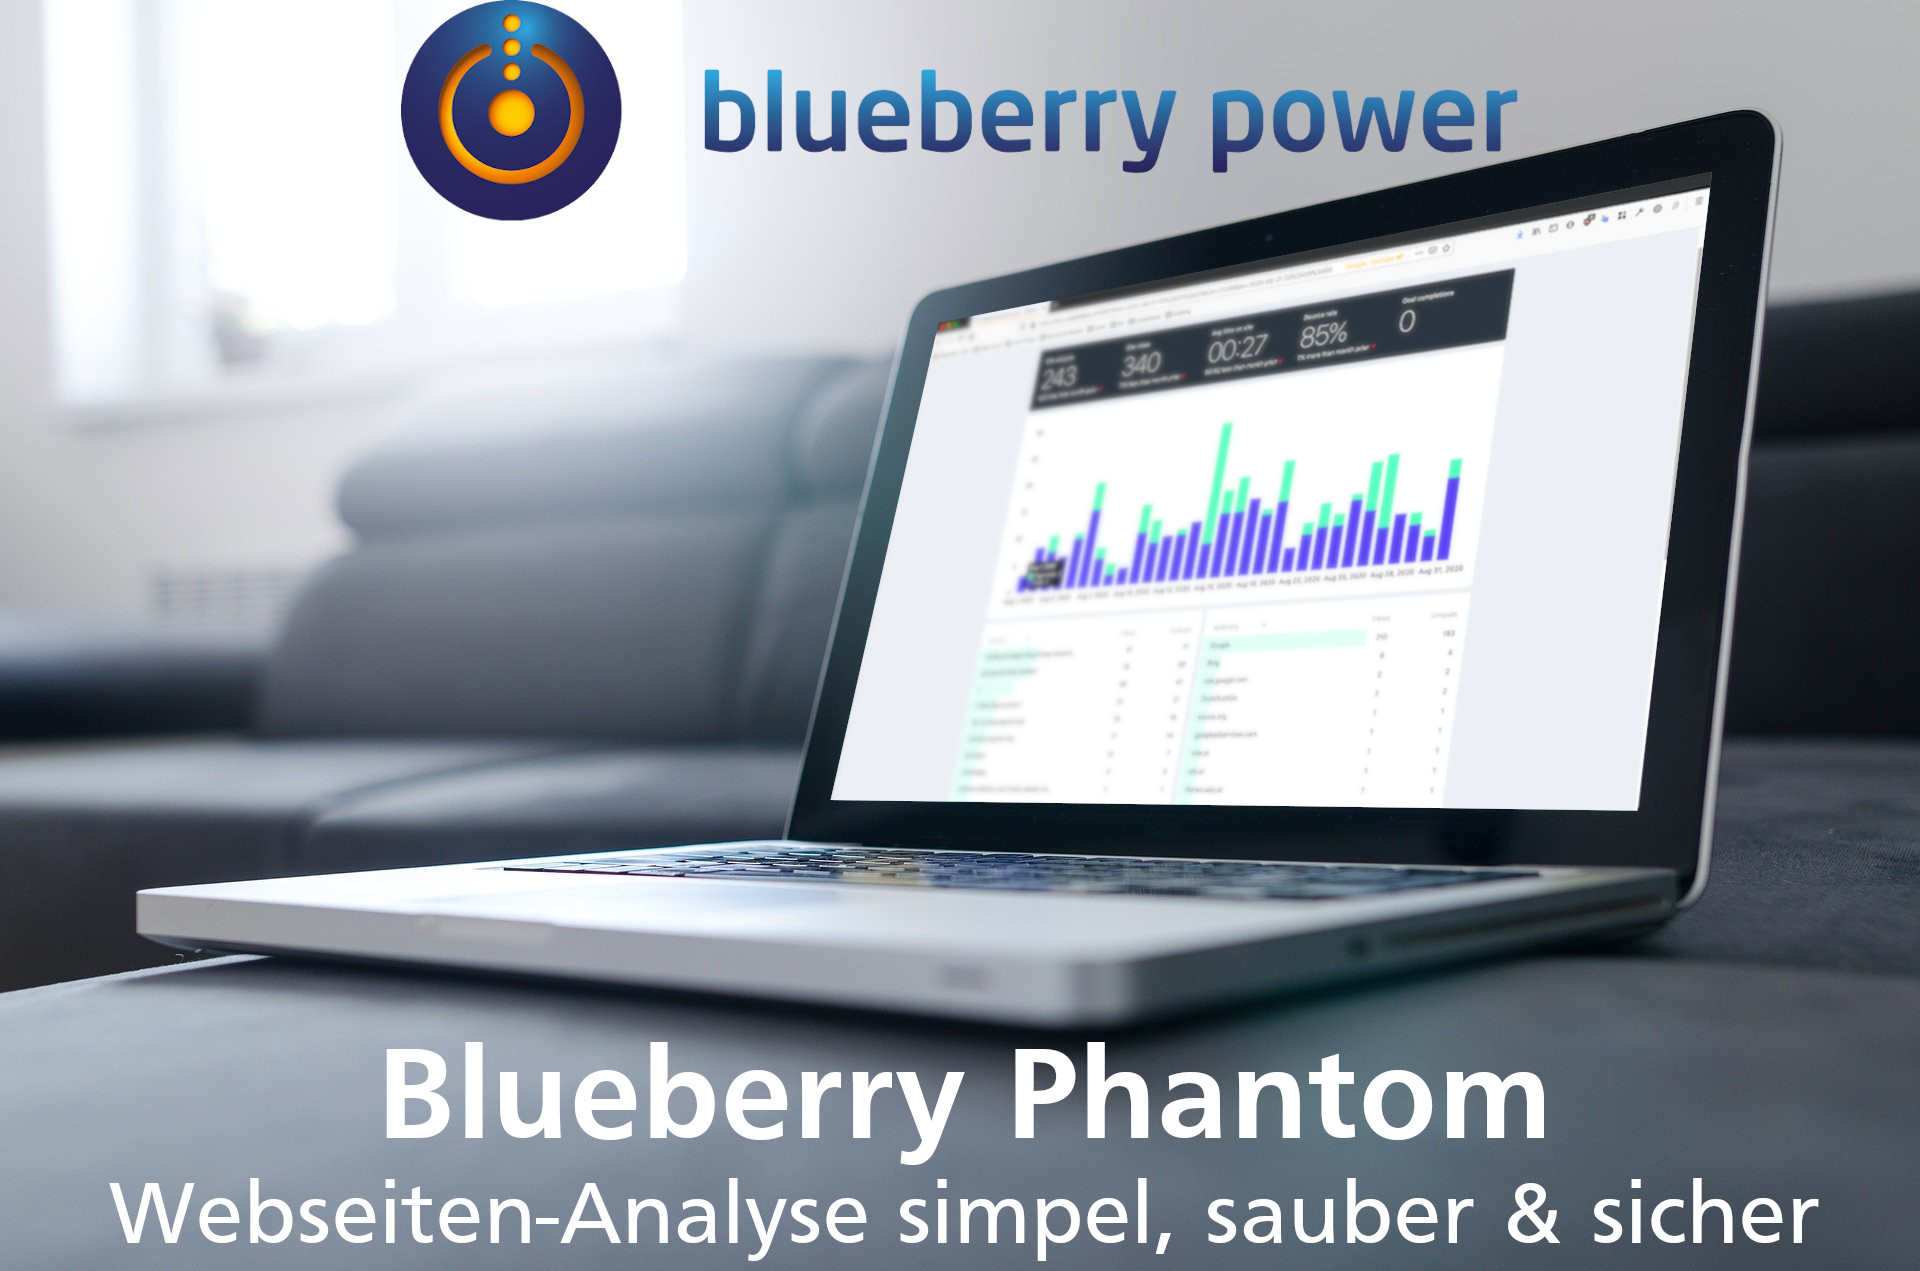 Blueberry Phantom Product Overview